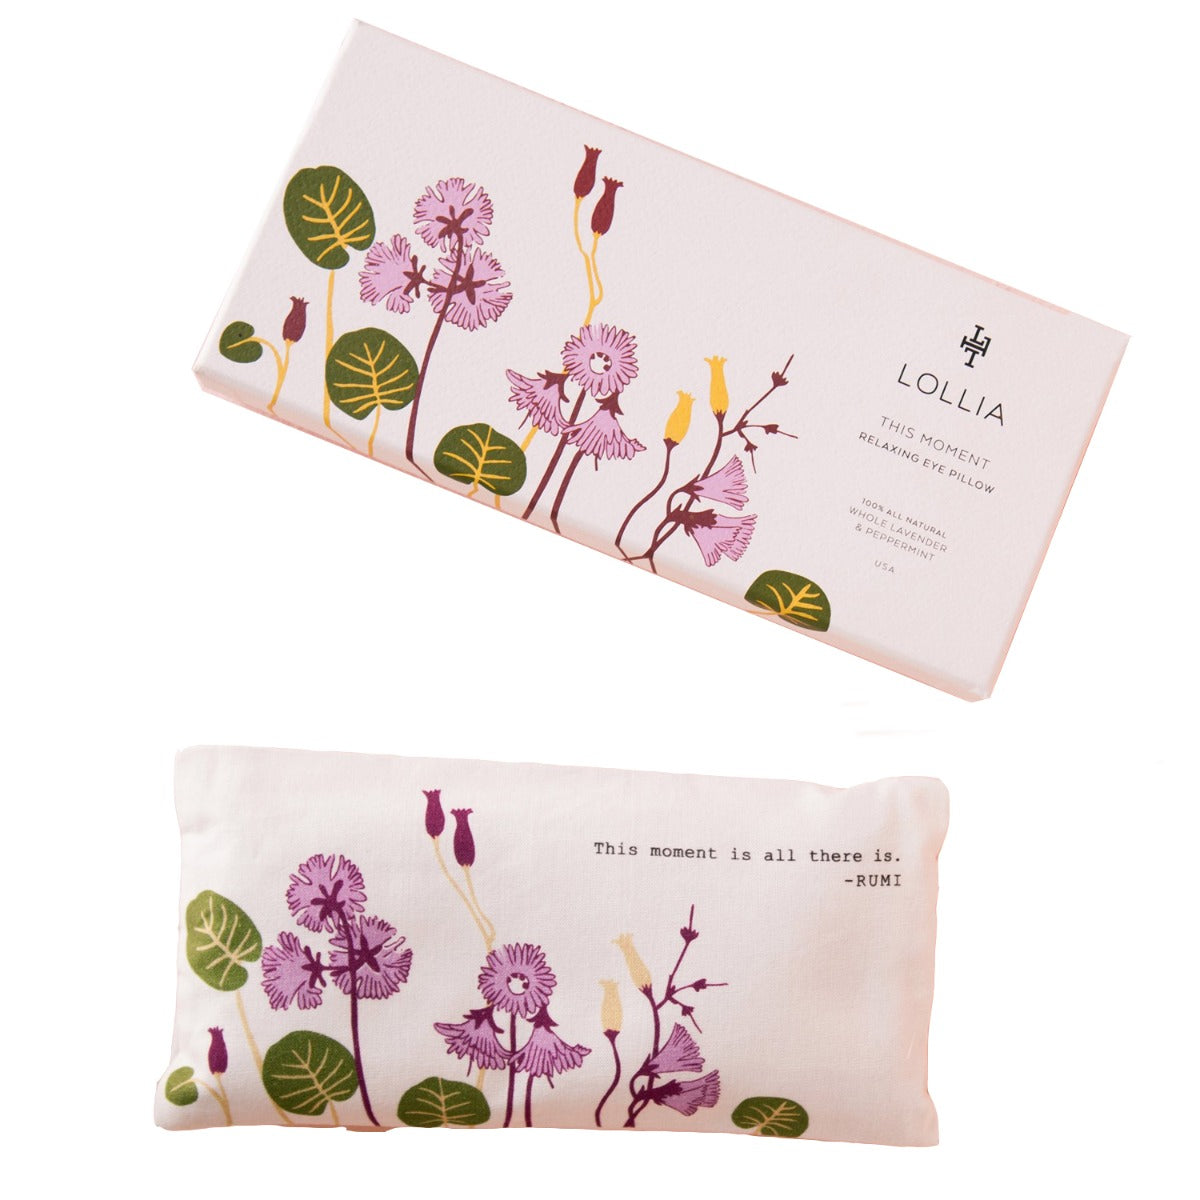 Lollia - Relaxing Eye Pillow - This Moment